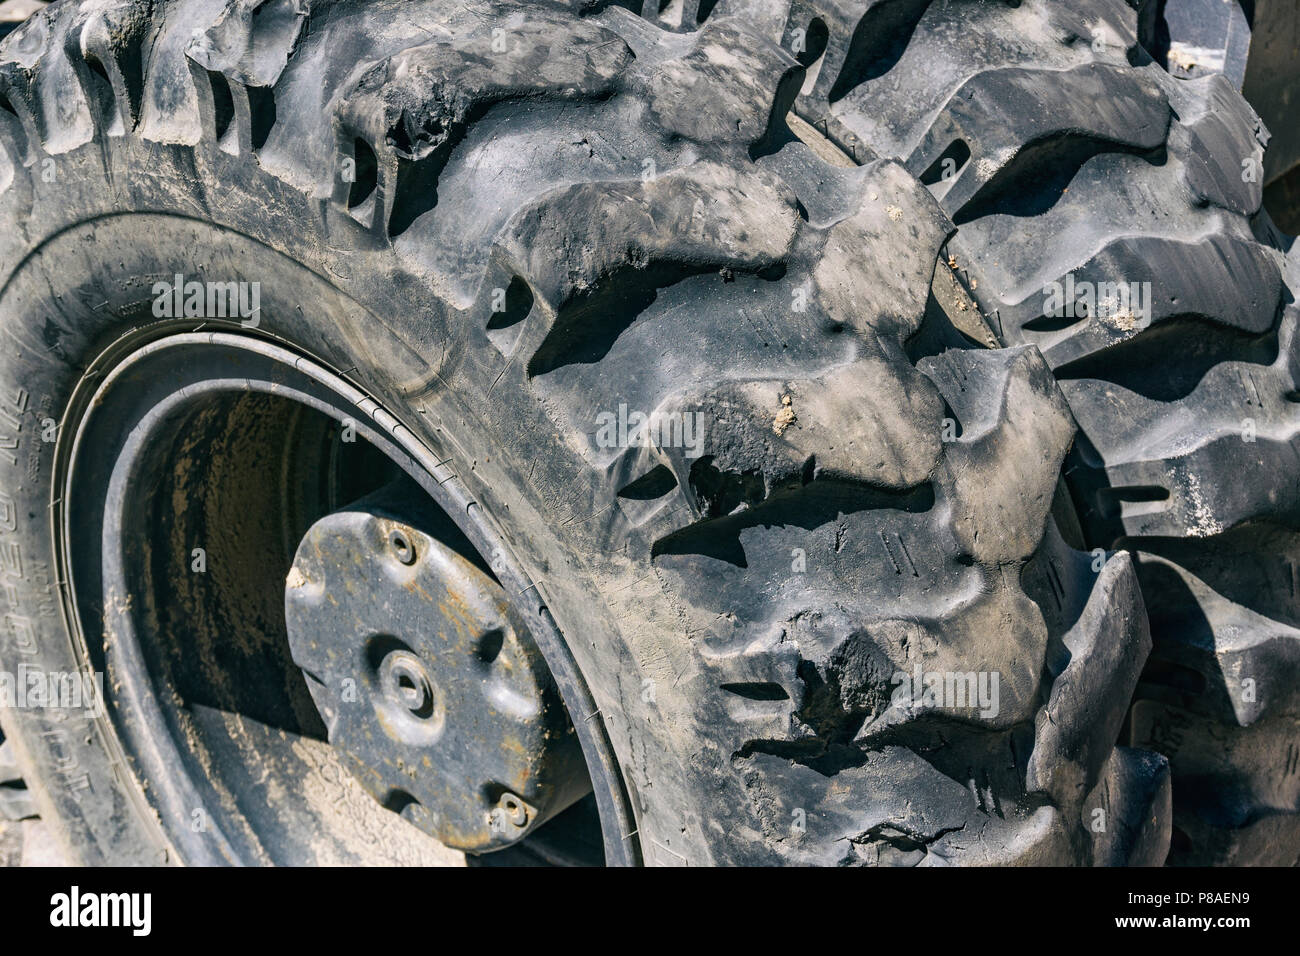 Berlin, Germany, July 04, 2018: Close-up of Heavy Dury Tyre - Stock Image